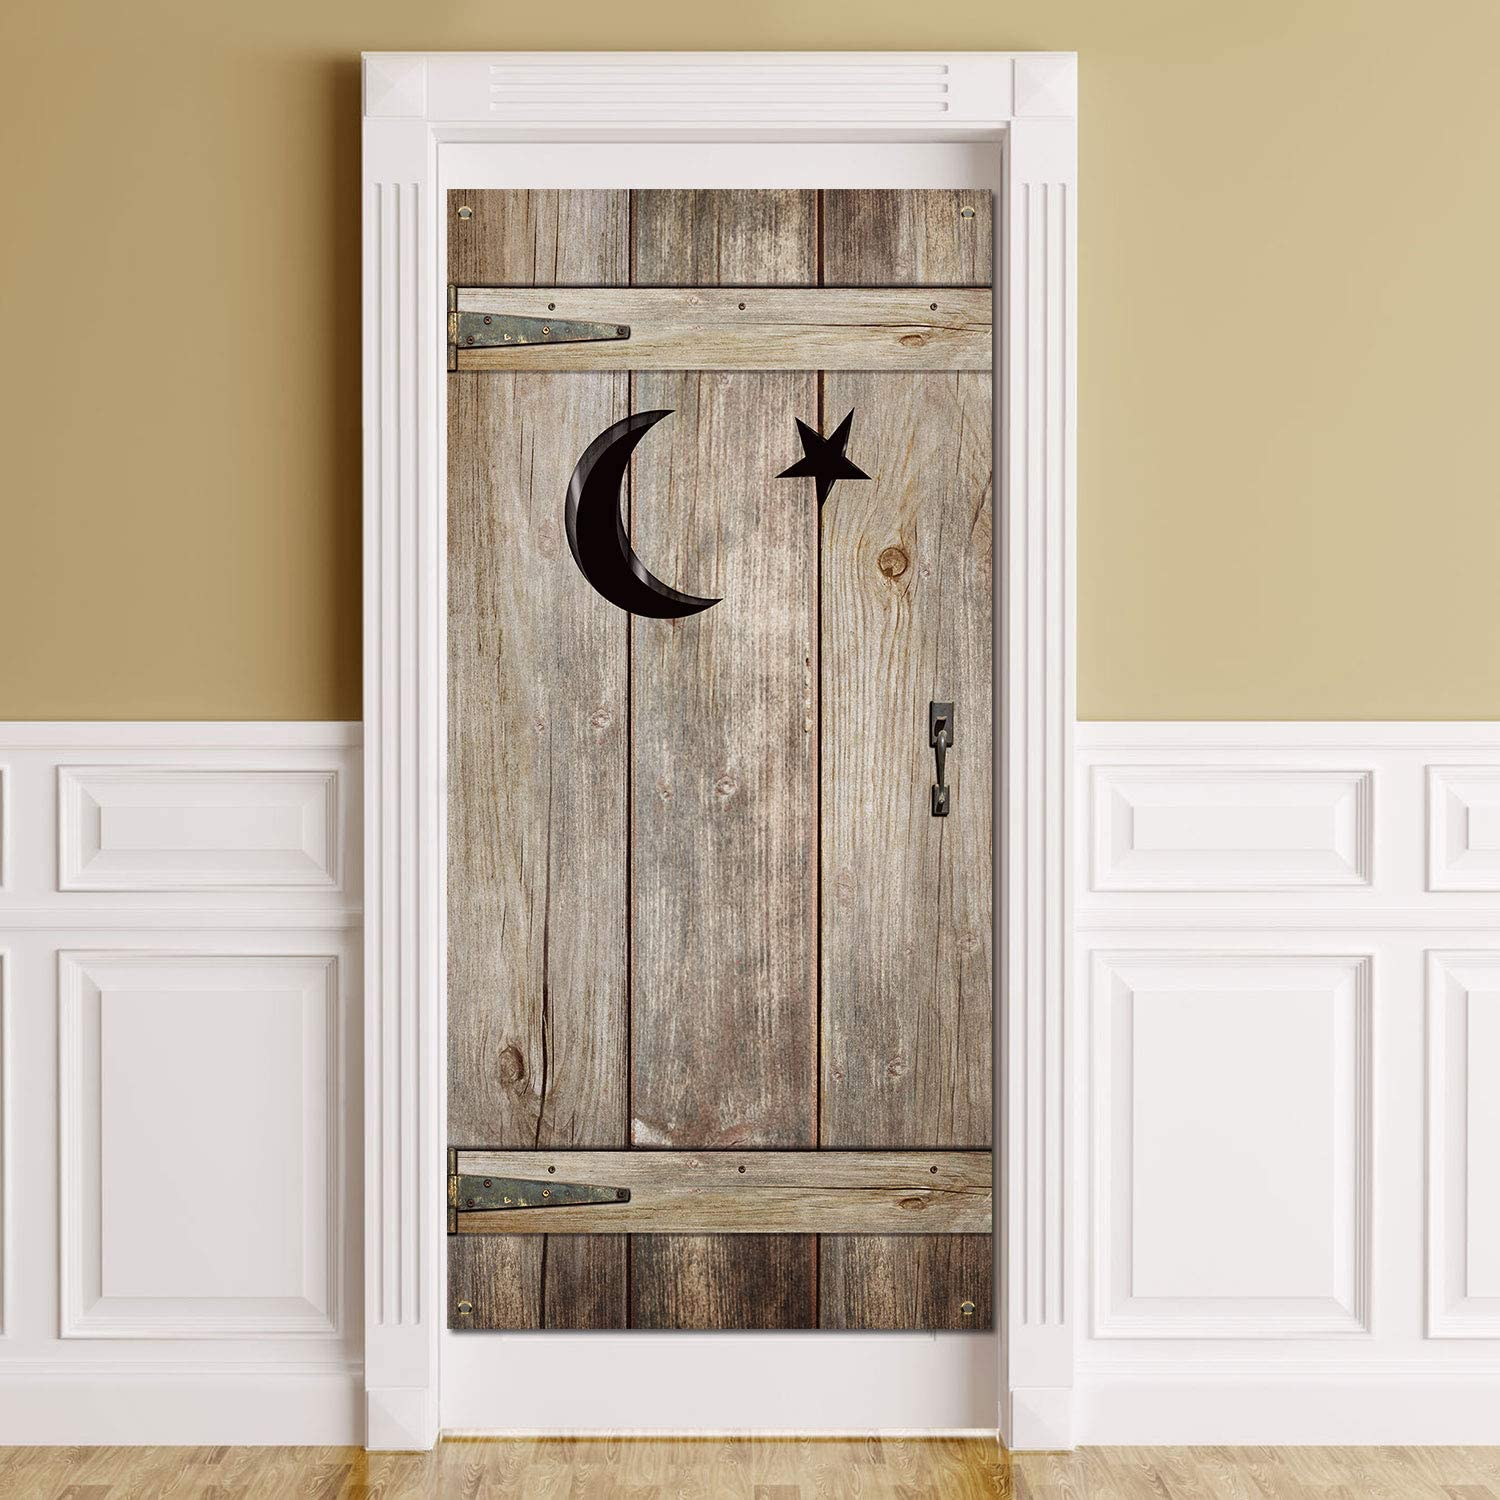 Outhouse Decorations Vintage Outhouse Barn Door Banner Backdrop Bathroom Door Cover Western Party Porch Sign Photo Booth Background for Western Country Theme Outhouse Party Supplies, 6 x 3 FT